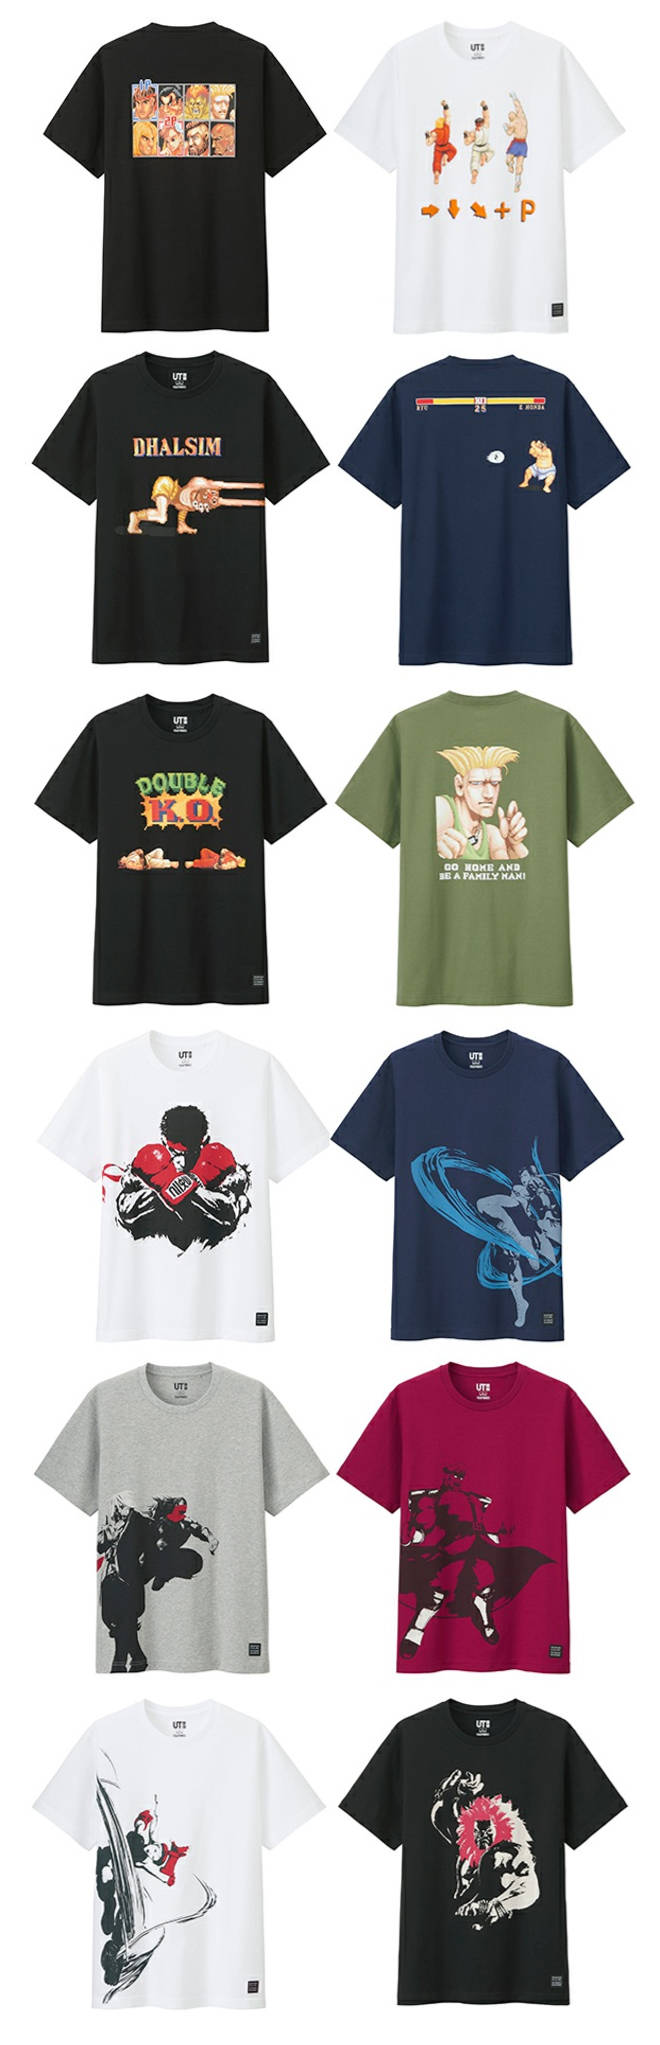 484307089 All items are newly designed featuring Street Fighter characters' iconic  special moves and poses.